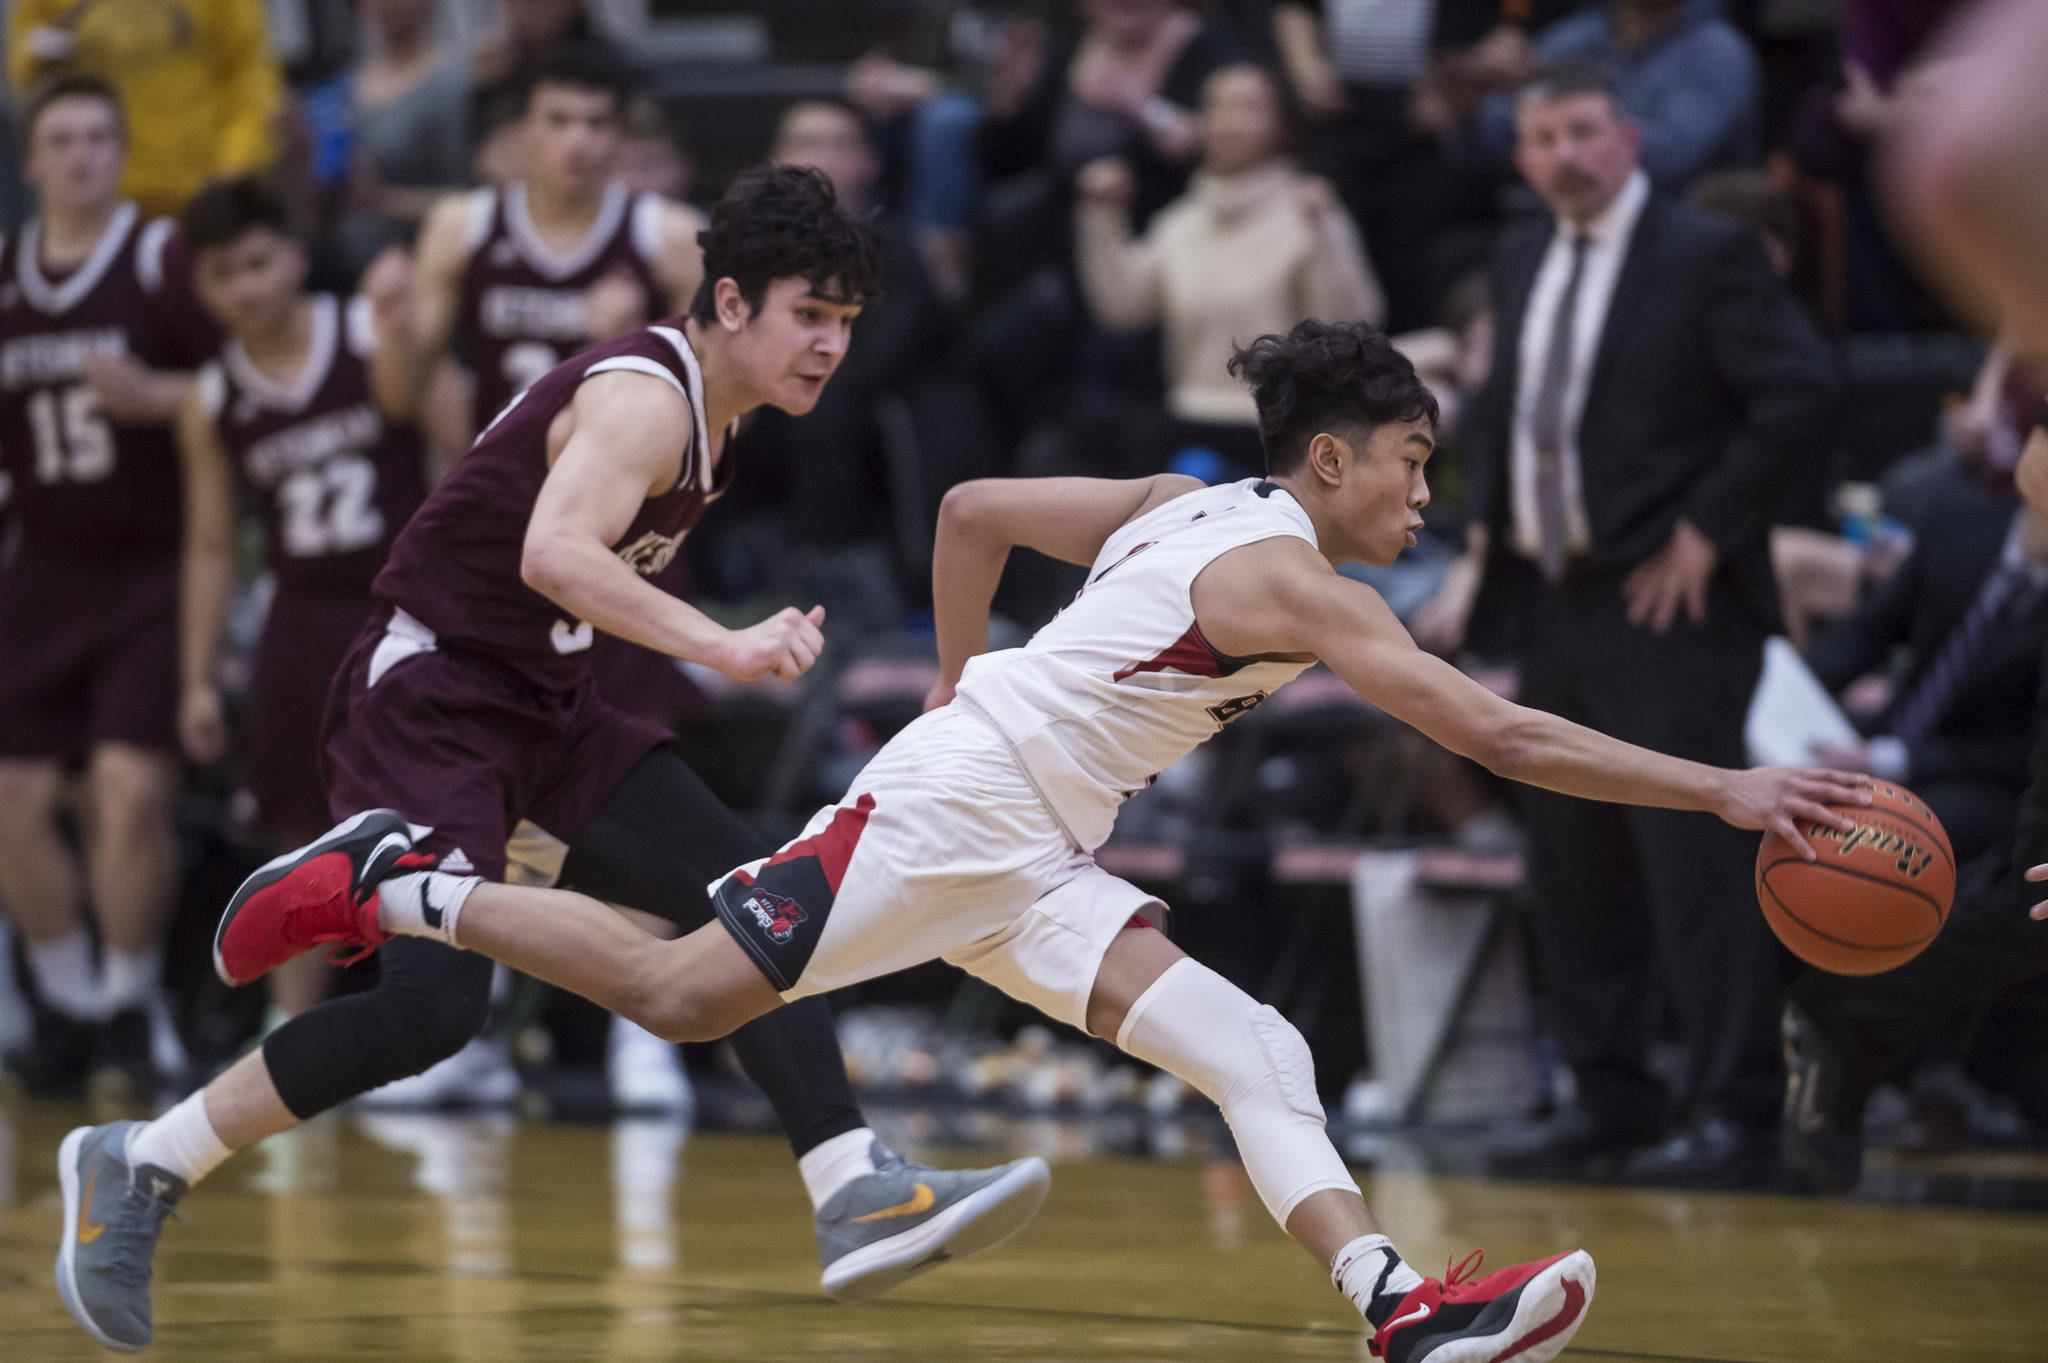 Juneau-Douglas' Israel Yadao, right, races Ketchikan's James Nordlund down the court at JDHS on Friday, Jan. 11, 2019. JDHS won 75-67. (Michael Penn | Juneau Empire)